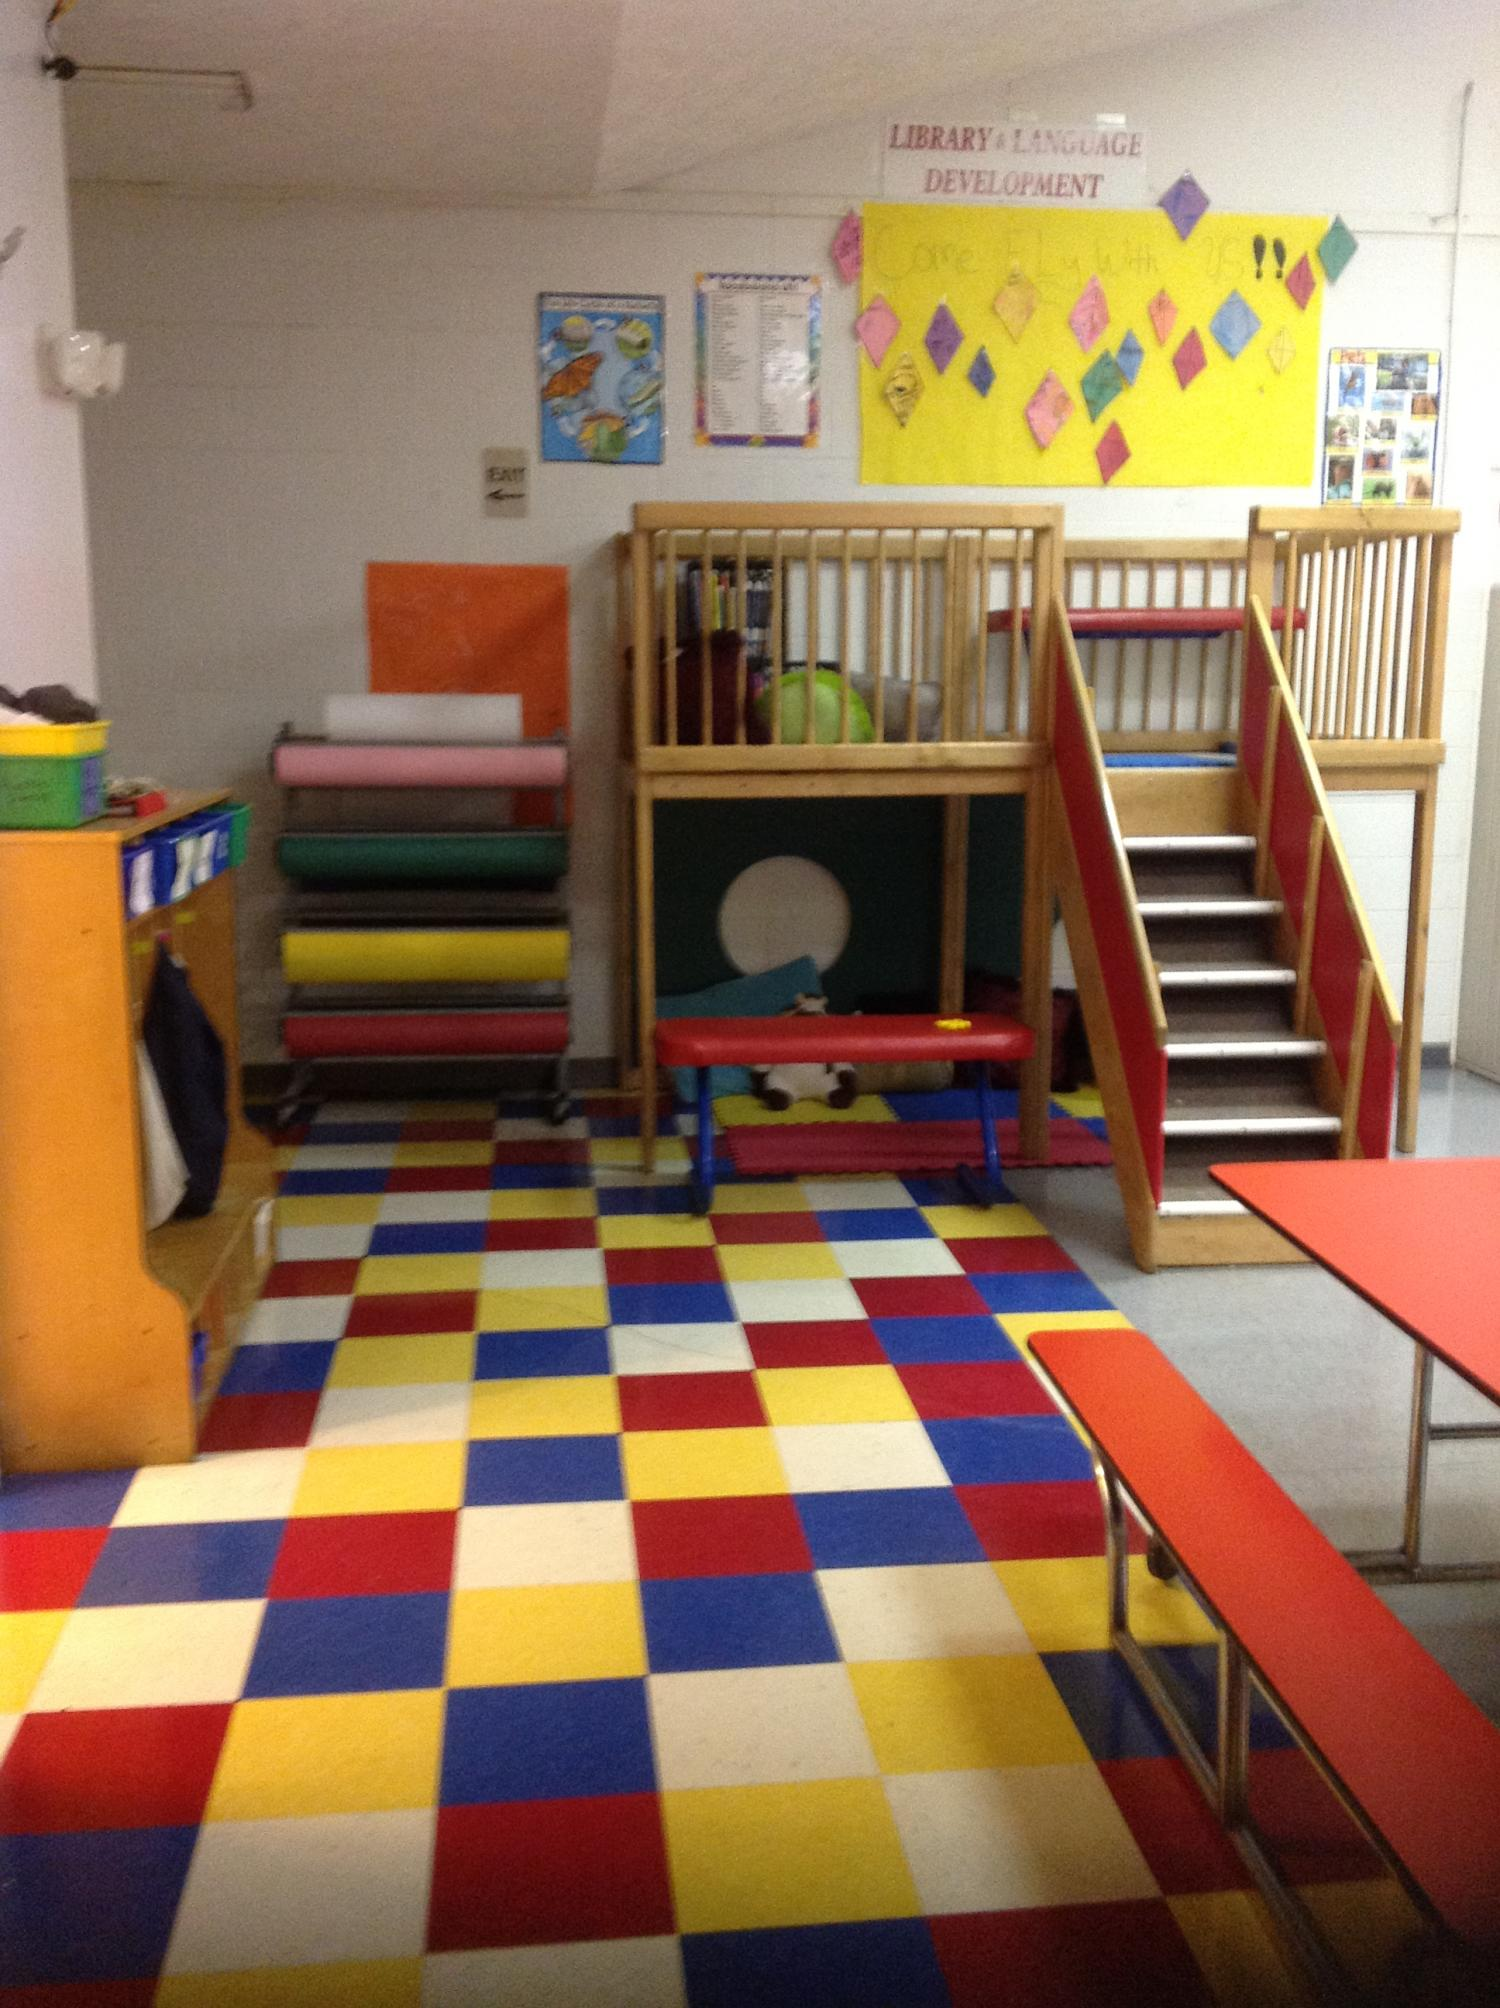 building blocks for christ daycare preschool, daycare, preschool, christian, building blocks for christ preschool daycare, building blocks, paducah, paducah KY, paducah, ky, kentucky, christian daycare, christain preschool, best daycare, best preschool